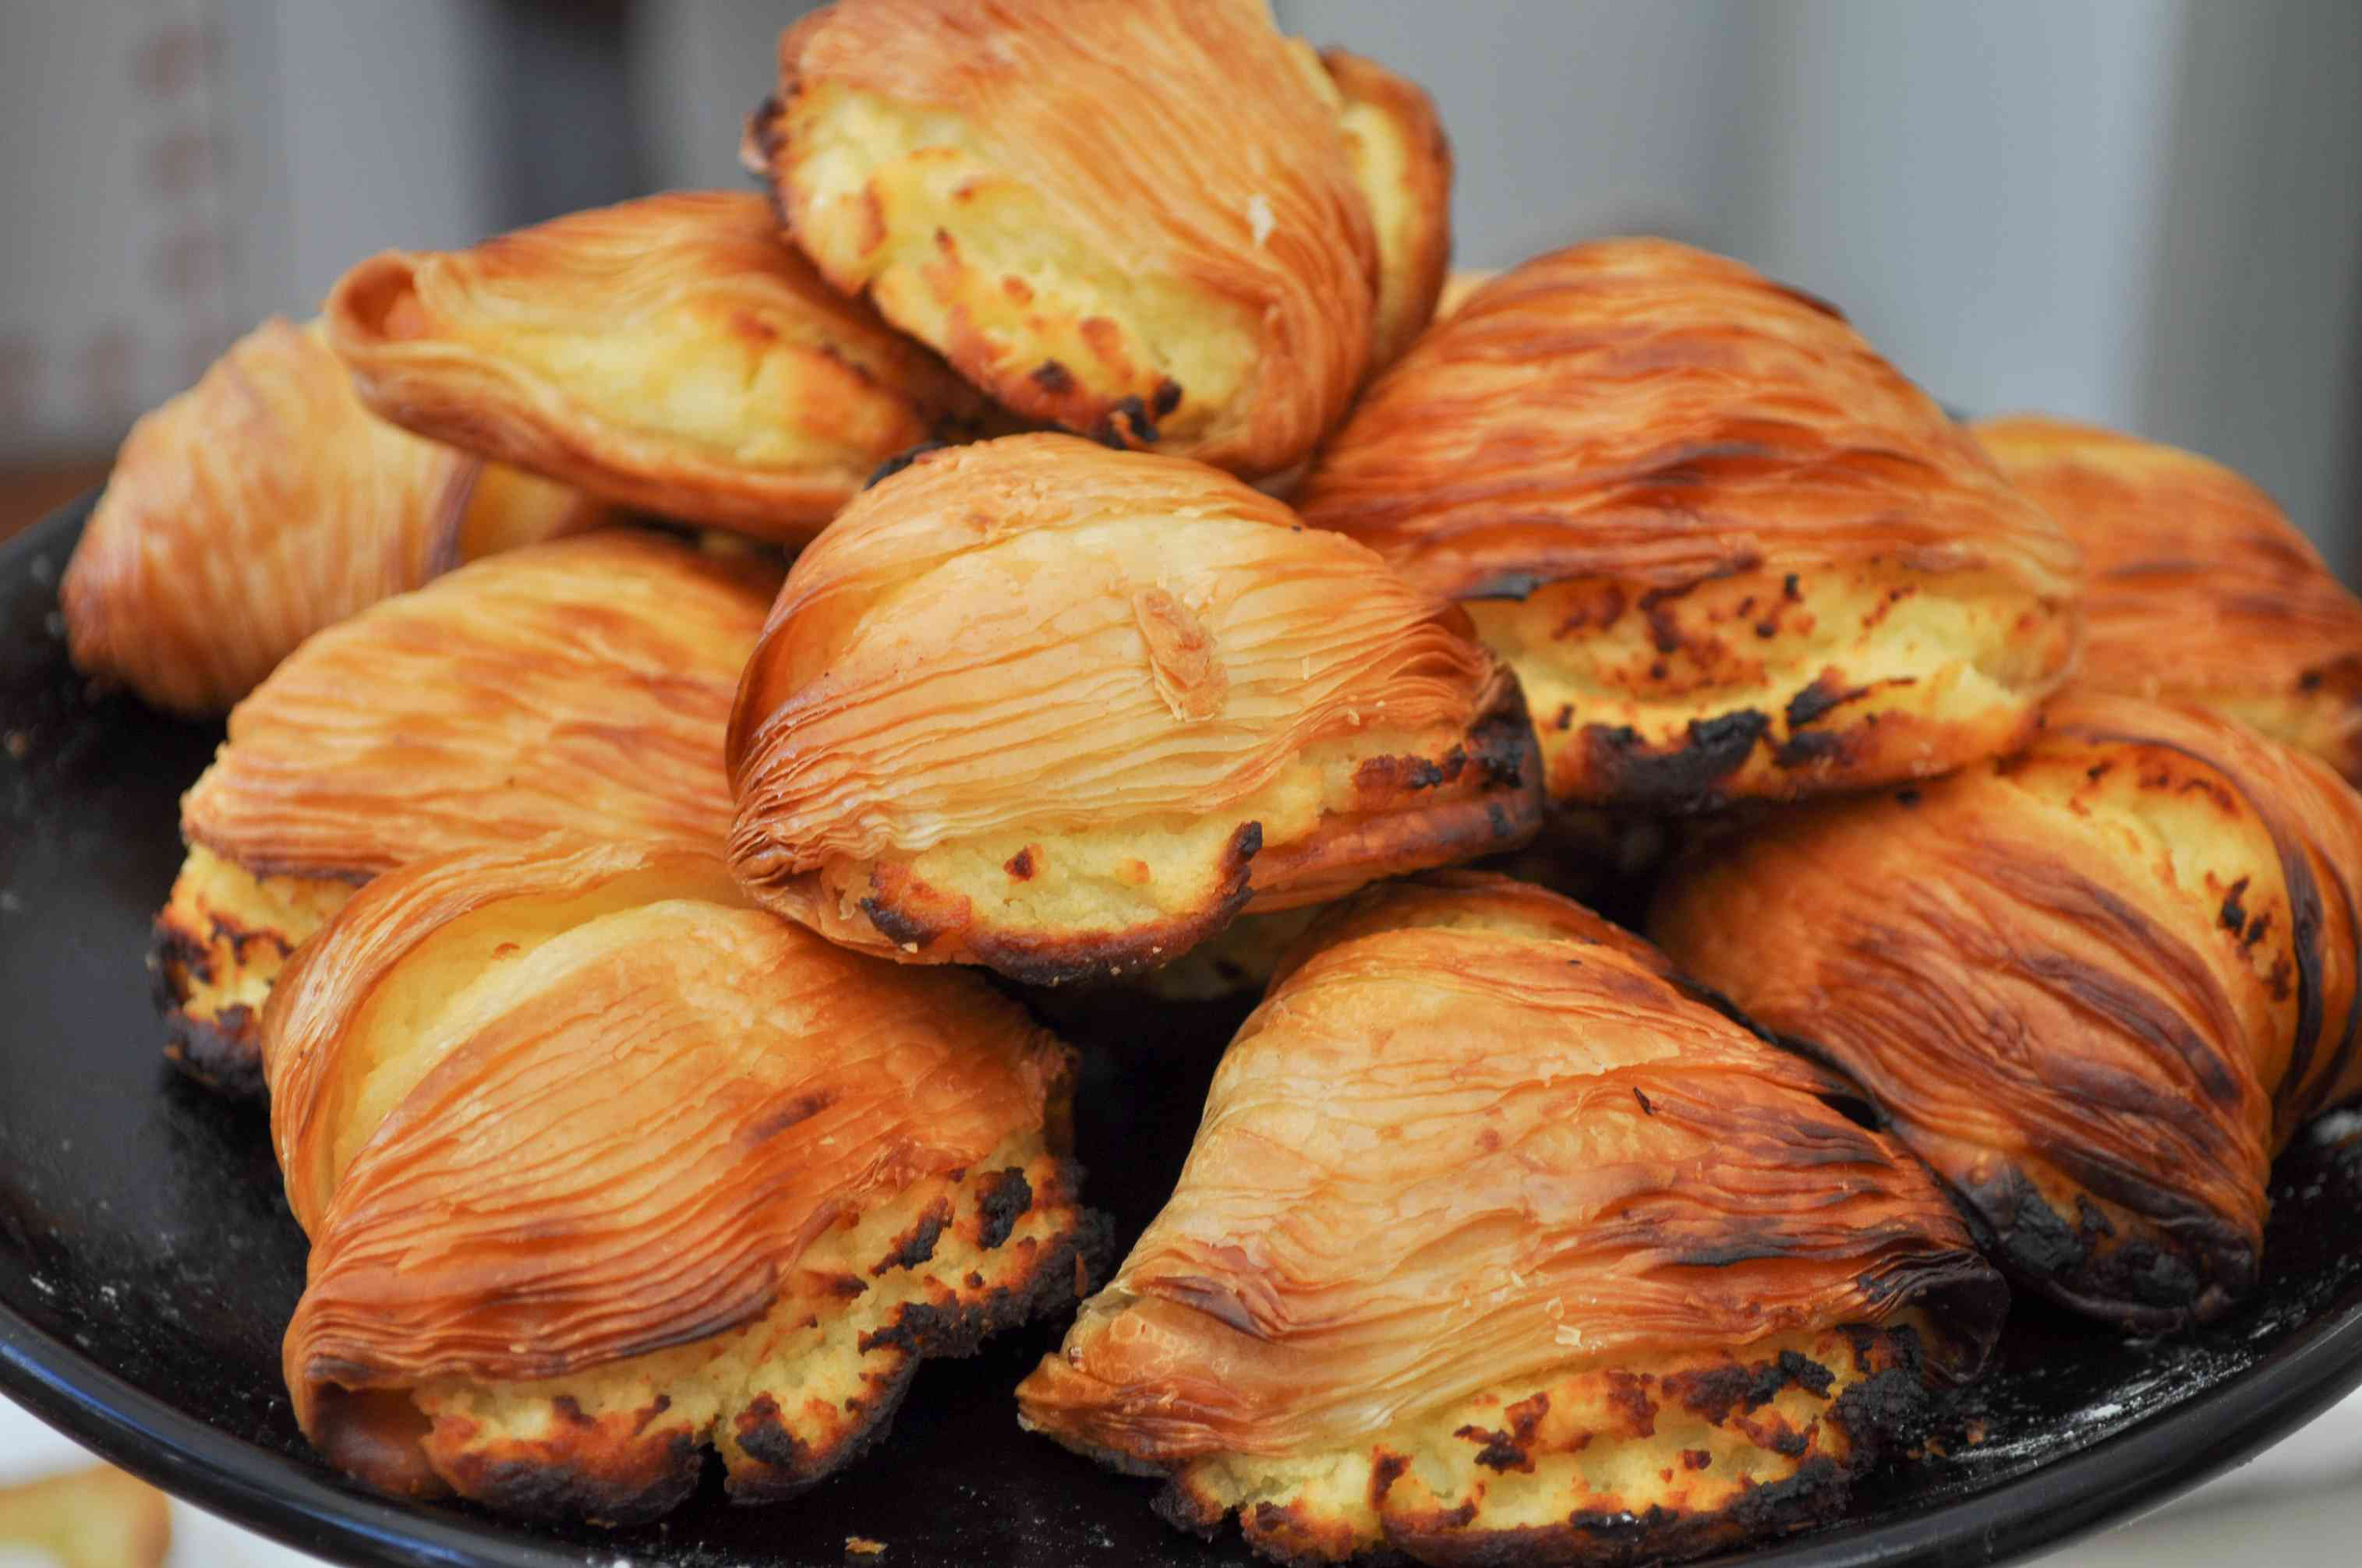 Sfogliatelle, Italian layered pastry that's a specialty of Naples